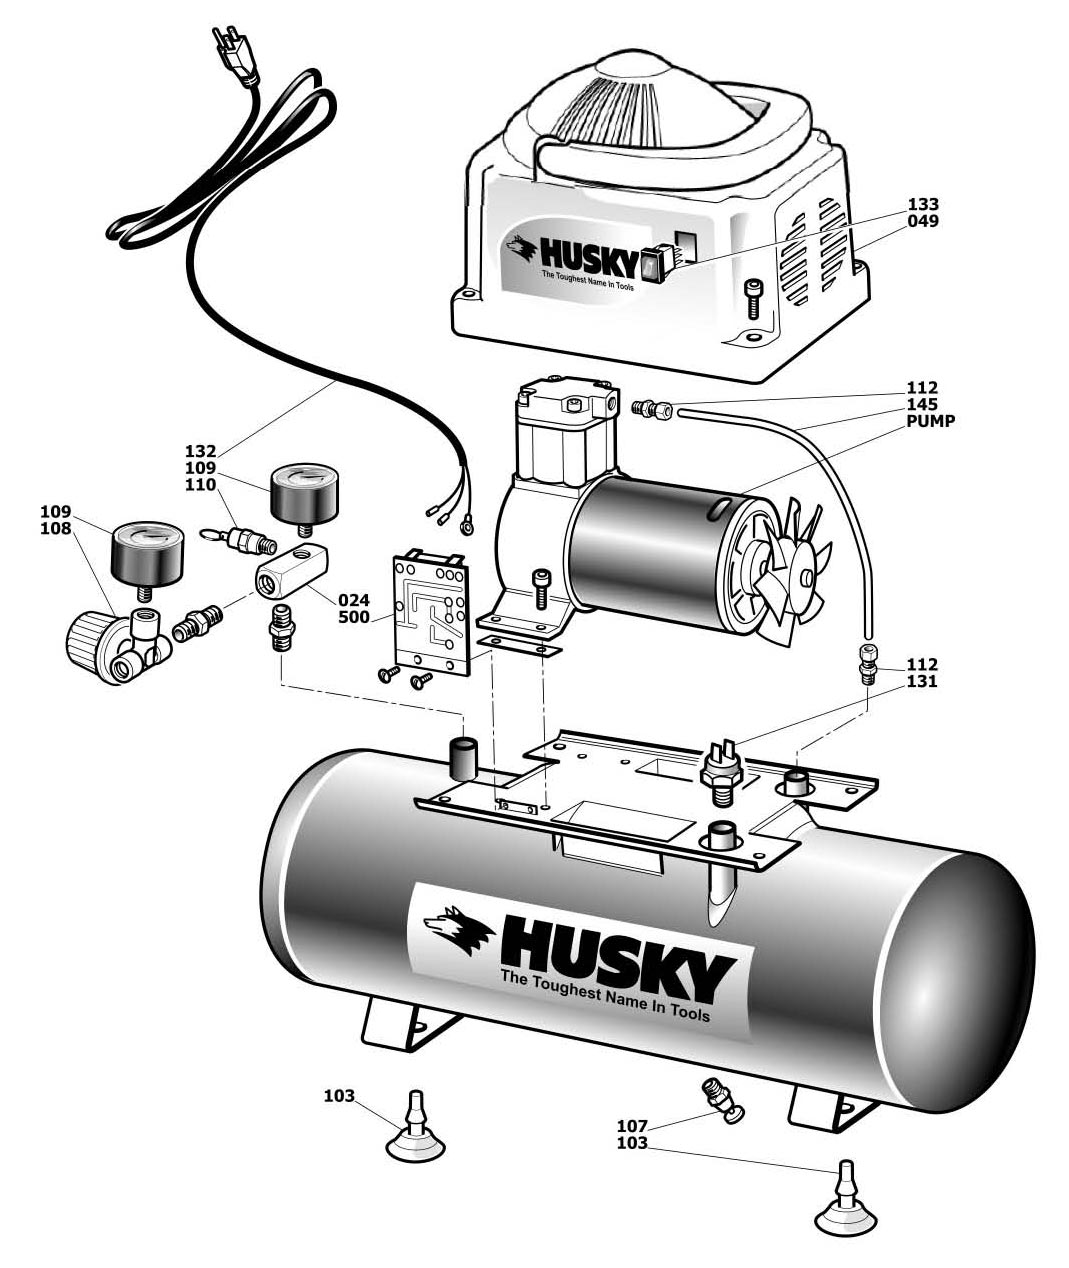 Husky Compressor Wiring Diagram For A Best Secret Heat Pump Air 35 Relay